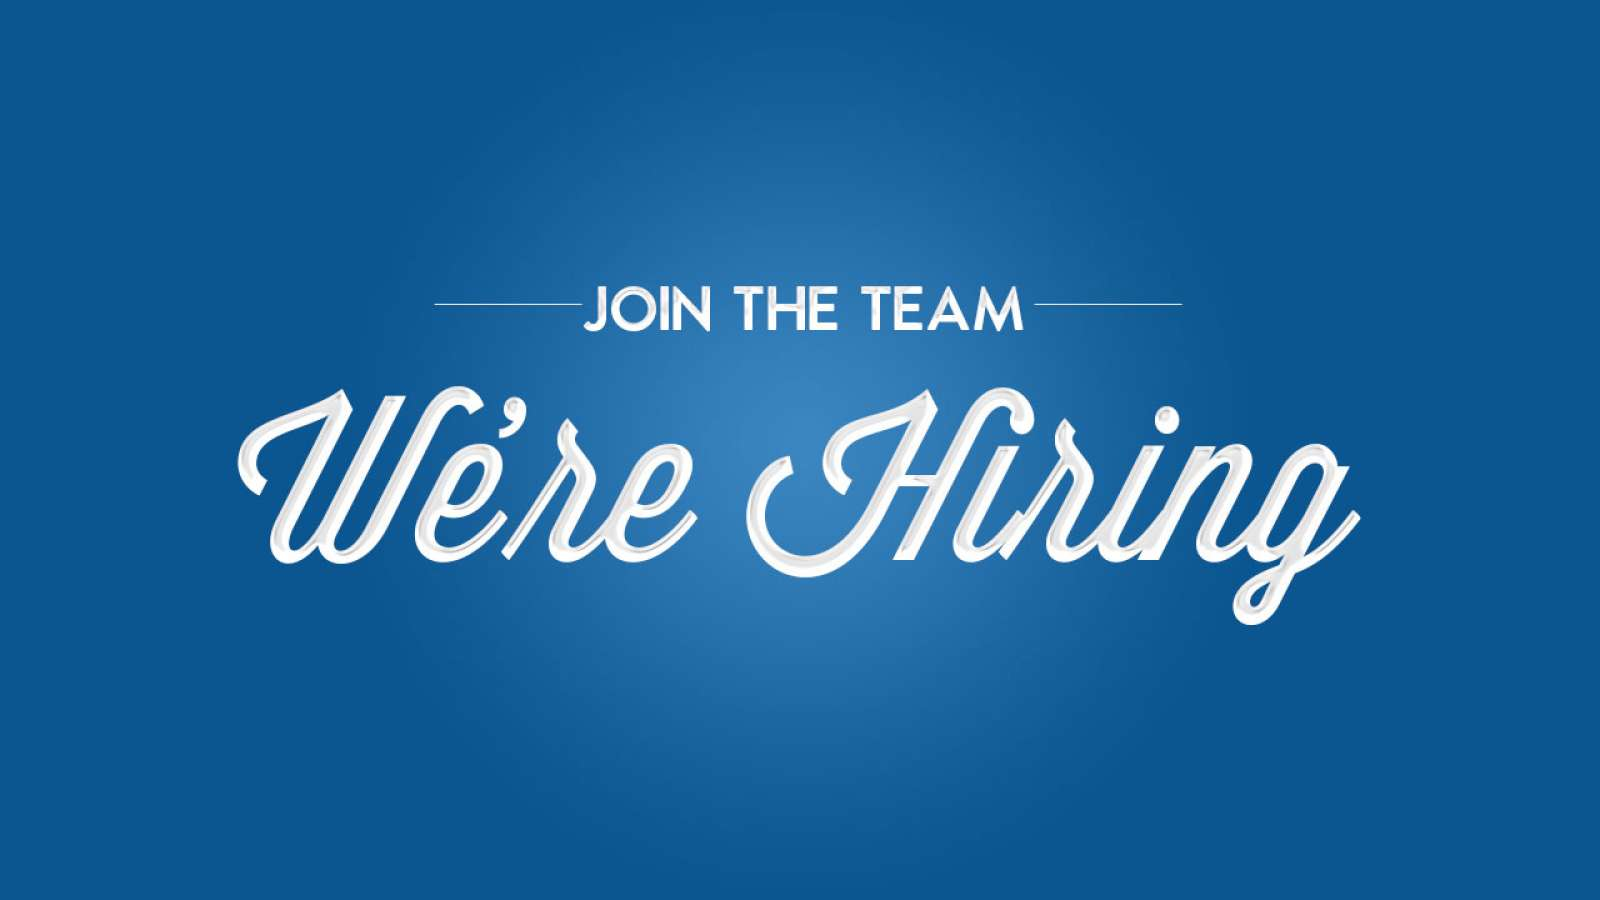 OPEN POSITIONS: Paralegal/Legal Assistant